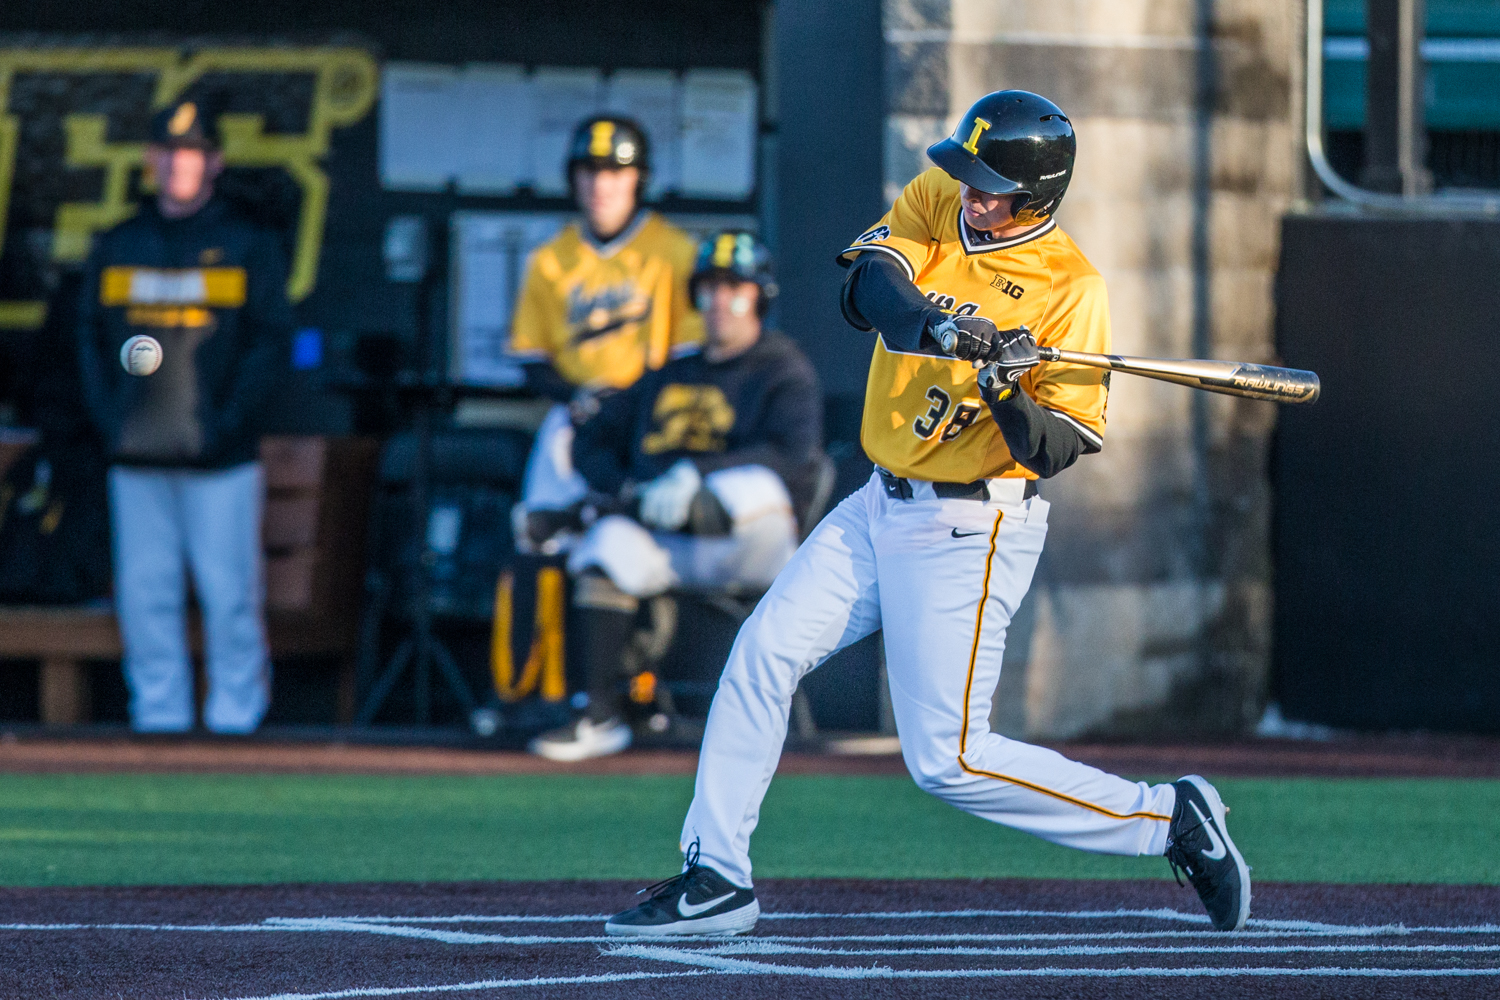 Iowa+outfielder+Trenton+Wallace+swings+while+at-bat+during+the+second+game+of+a+baseball+doubleheader+between+Iowa+and+Cal-State+Northridge+at+Duane+Banks+Field+on+Sunday%2C+March+17%2C+2019.+The+Hawkeyes+took+the+series+by+defeating+the+Matadors%2C+3-1.